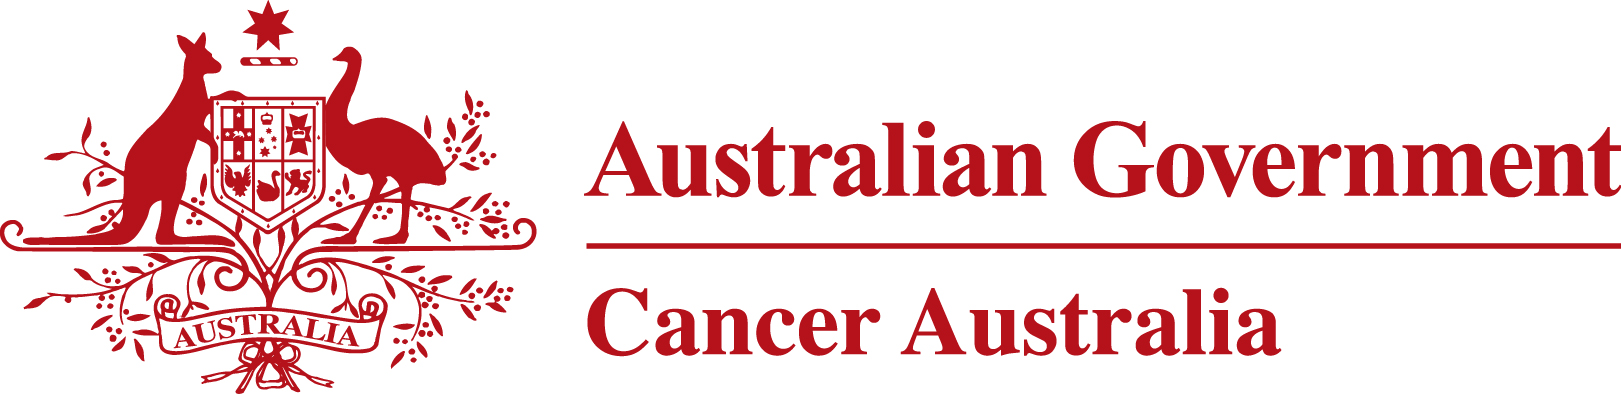 Austalian Government - Cancer Australia